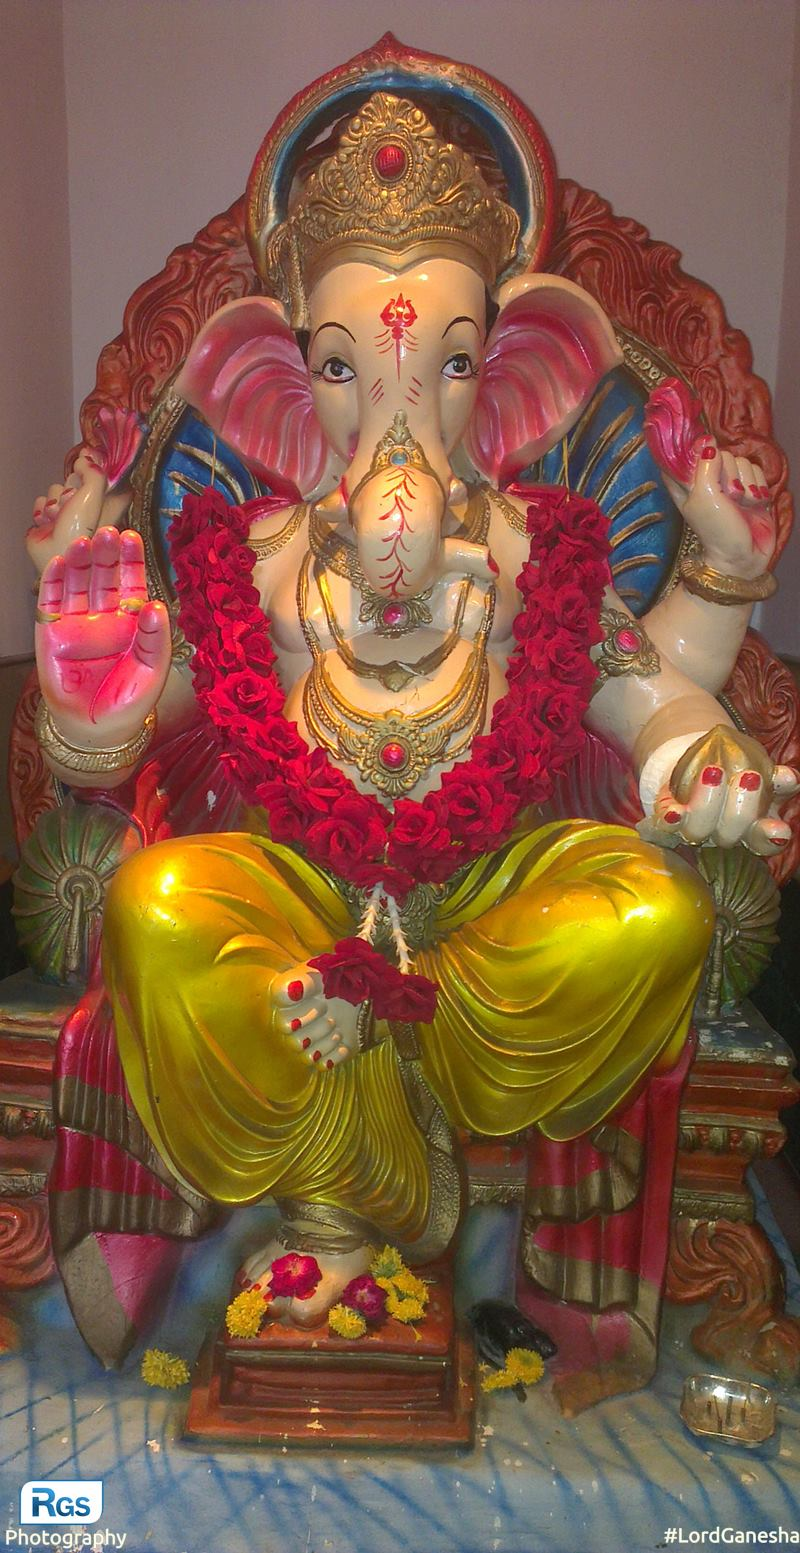 The Lord Ganesha (ganpatibappa)